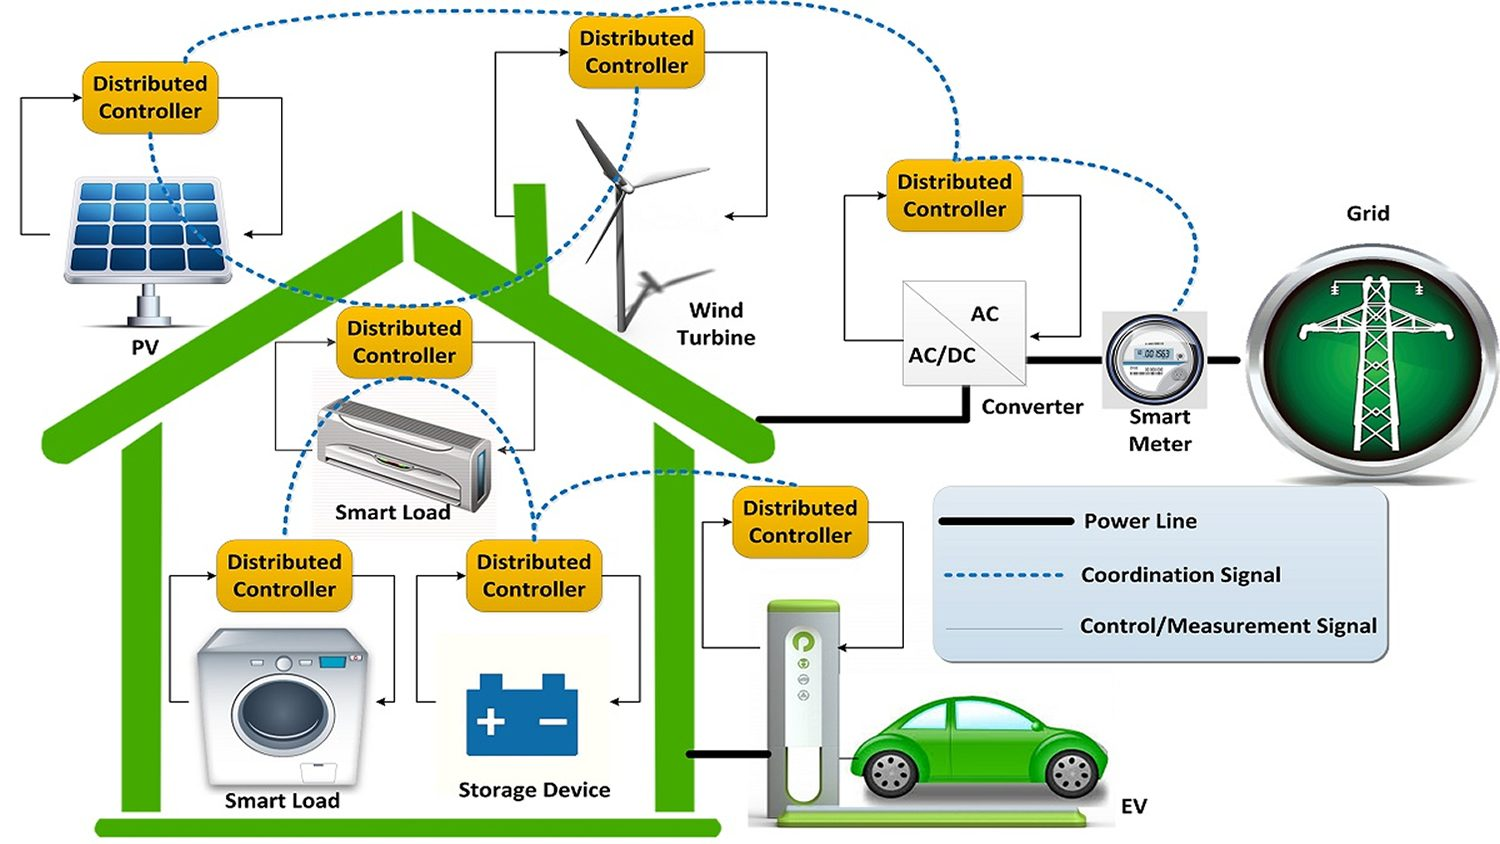 Cooperative Distributed Home Energy Management Systems designed by Dr. Mo-Yuen Chow